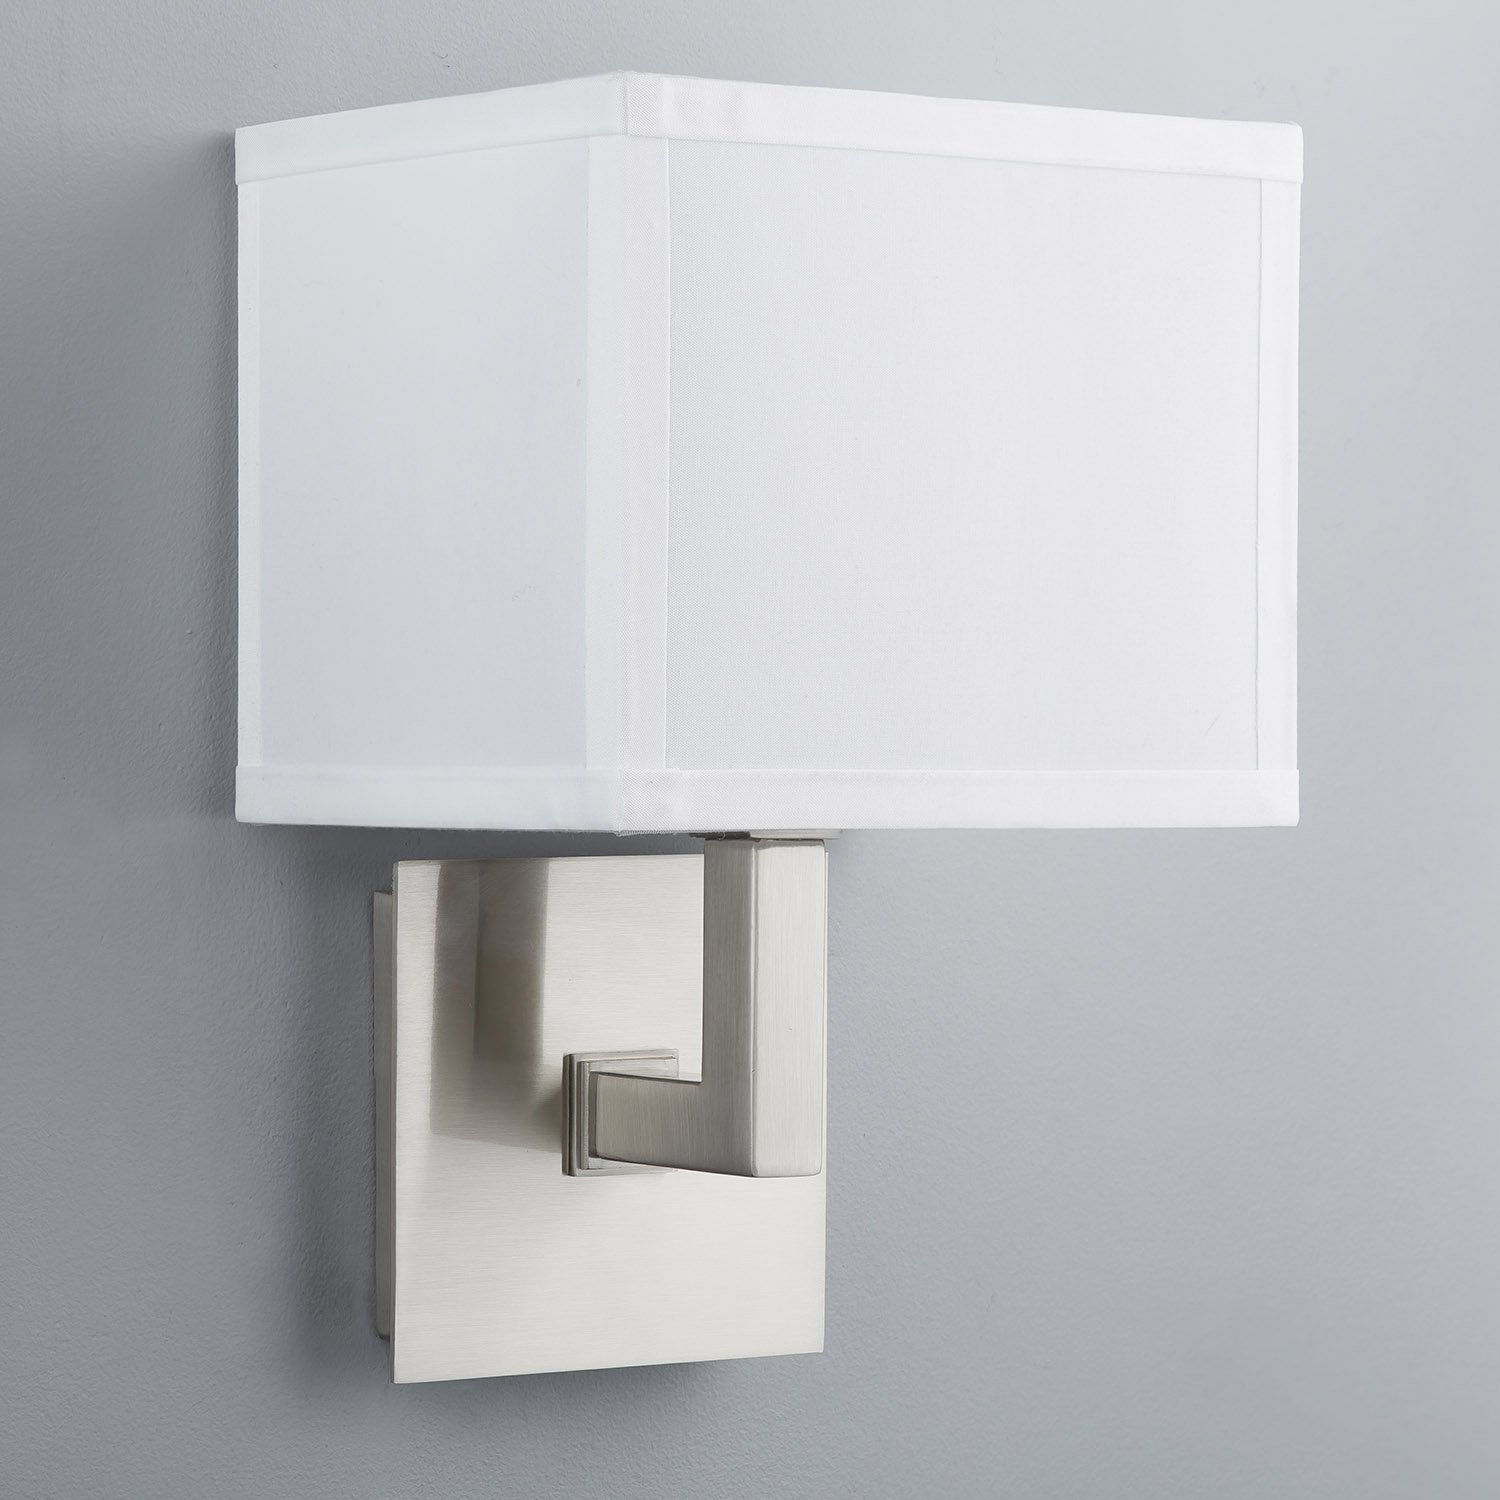 Sofia wall sconce one light lamp brushed nickel with white fabric sofia wall sconce one light lamp brushed nickel with white fabric shade linea di liara ll wl350 1 bn amazon amipublicfo Gallery